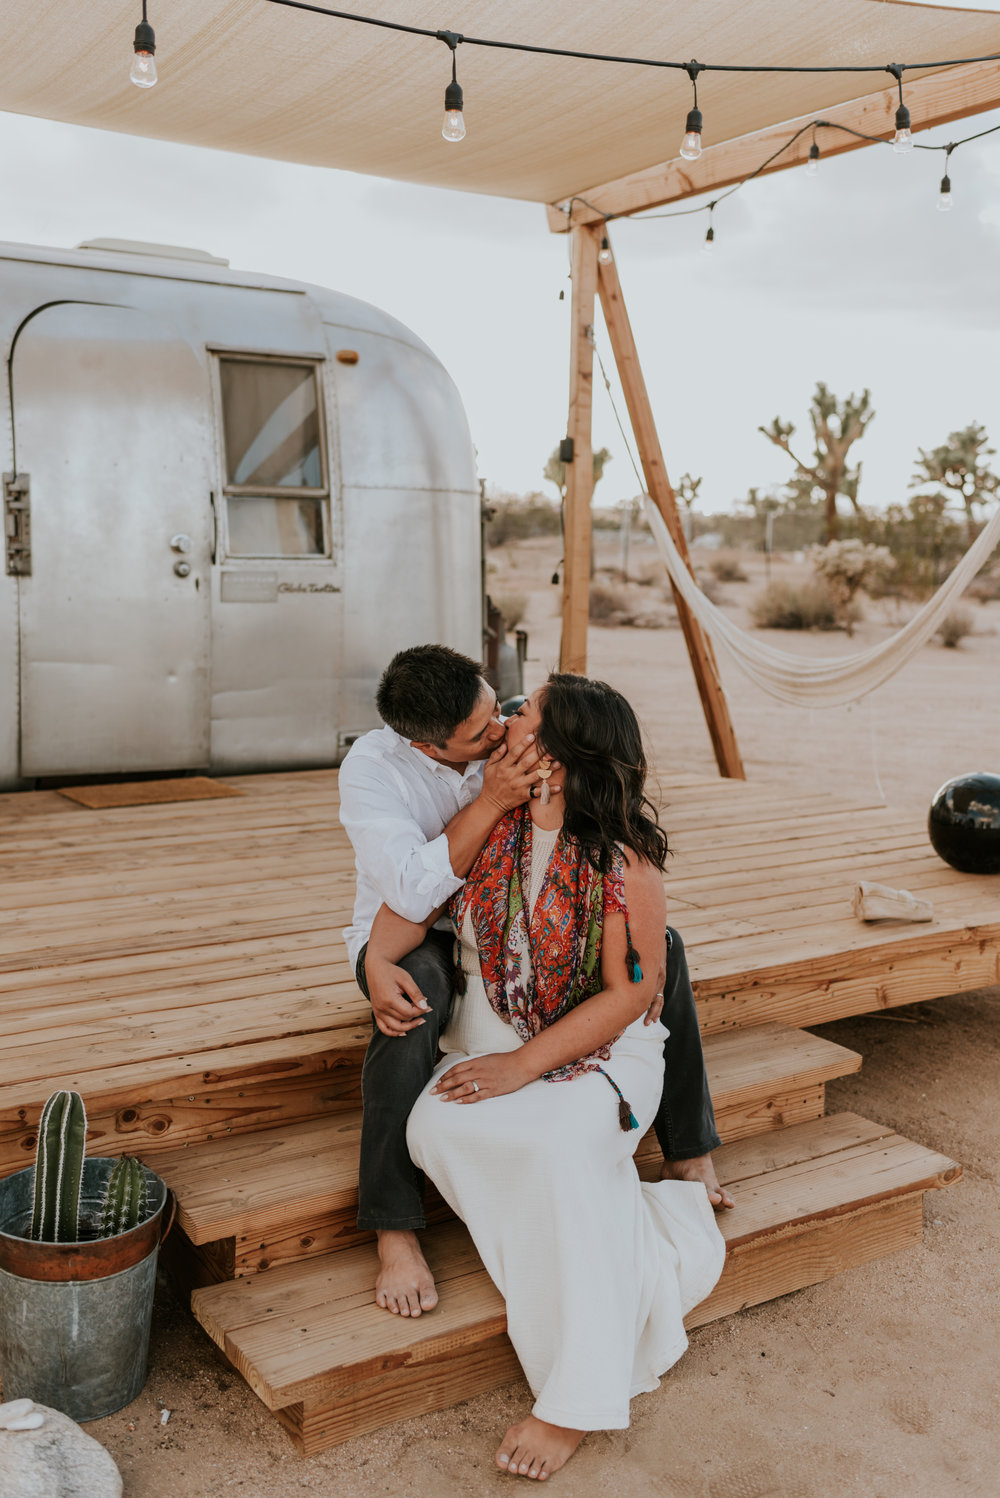 joshuatreeairstreamcouplessessioncarrierogersphotography-11.jpg